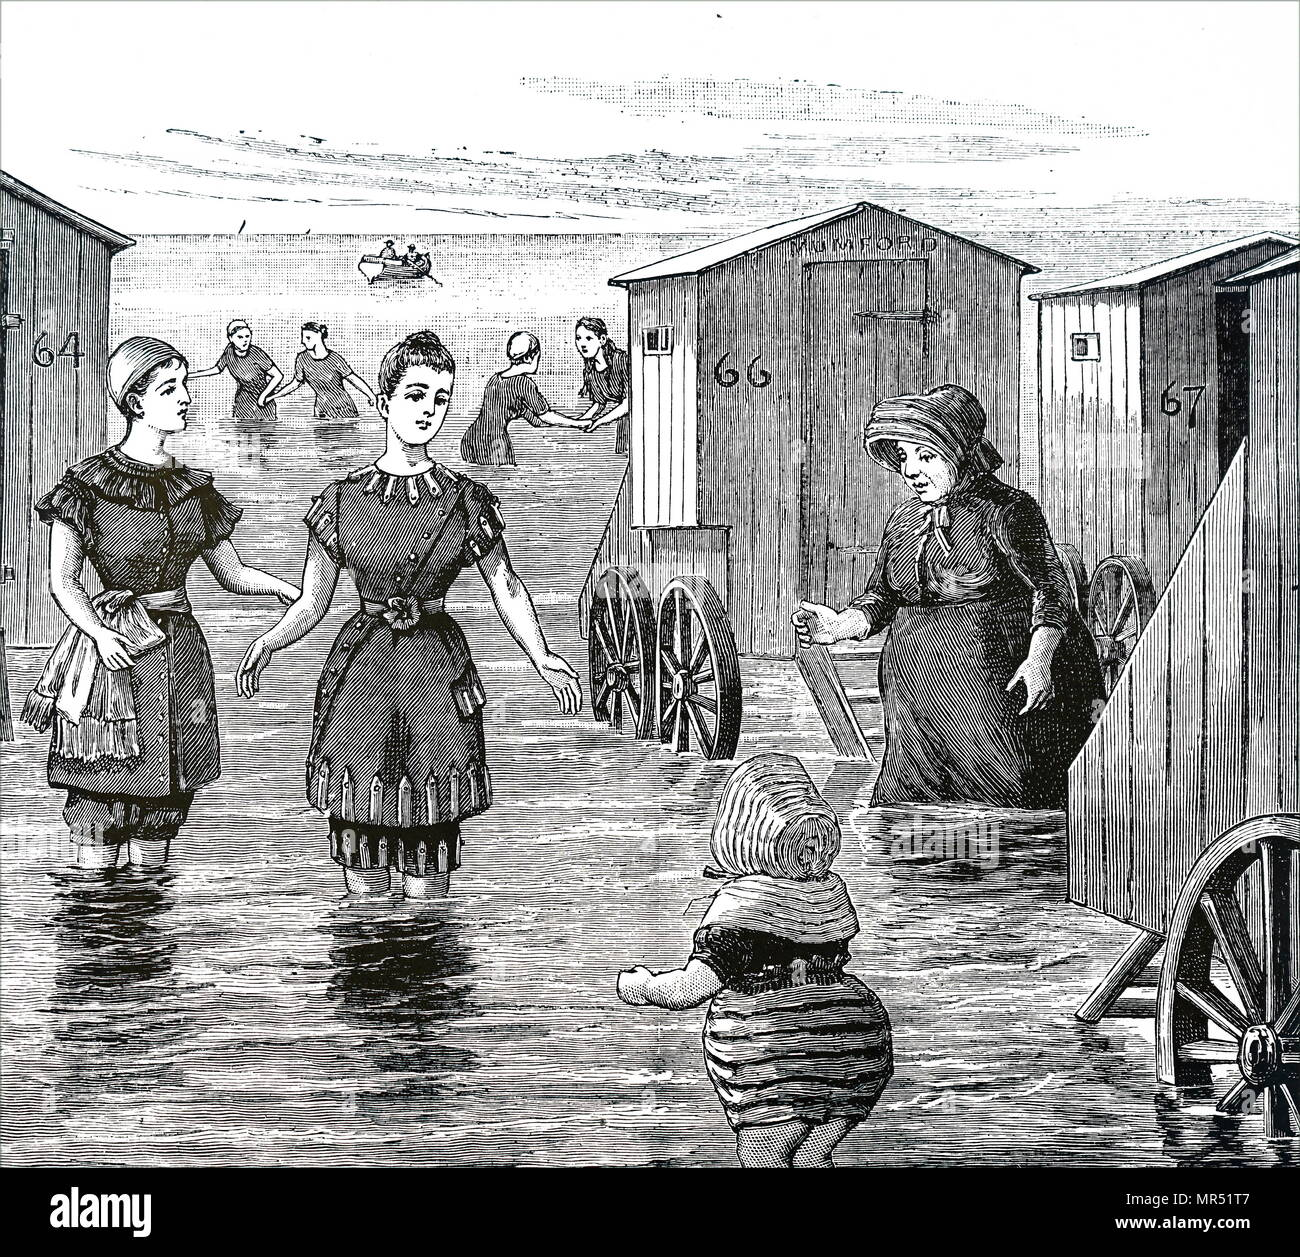 Illustration depicting ladies enjoying a day at the seaside. Dated 19th century - Stock Image